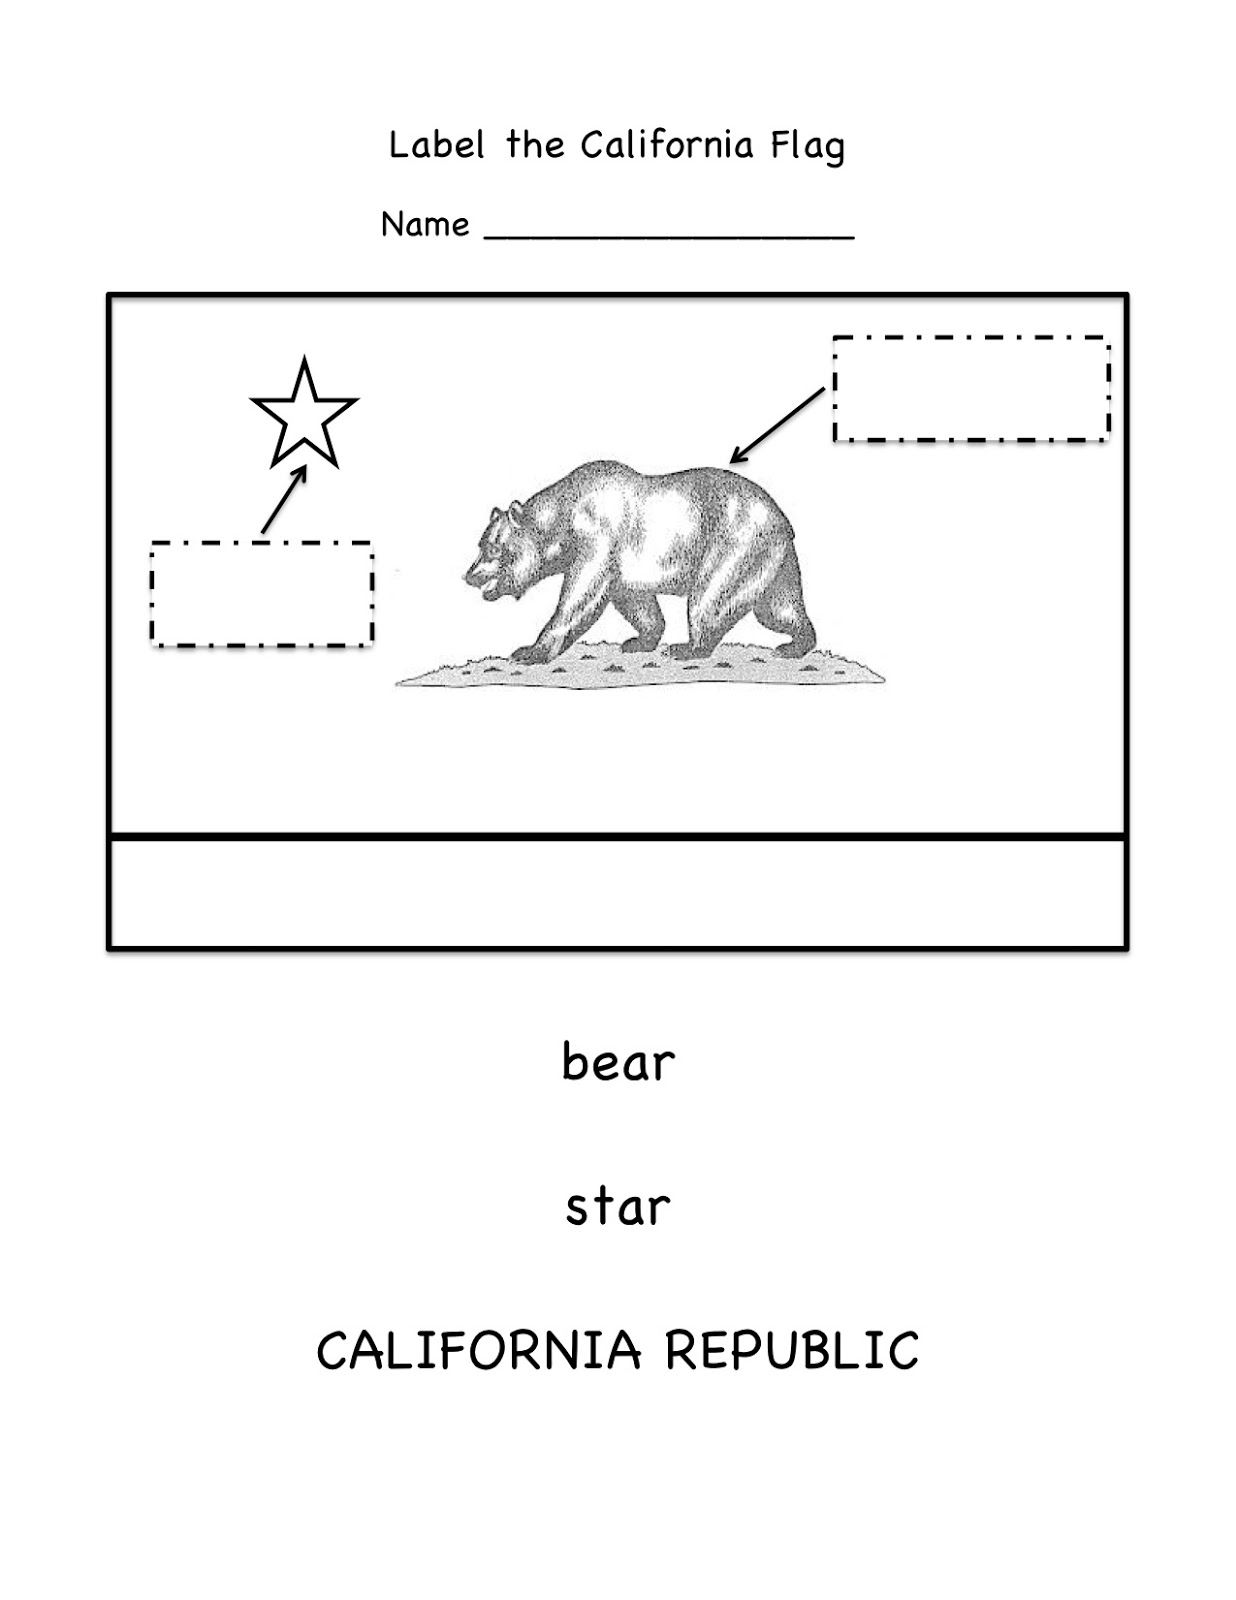 Free Worksheet For Labeling The Parts Of The California